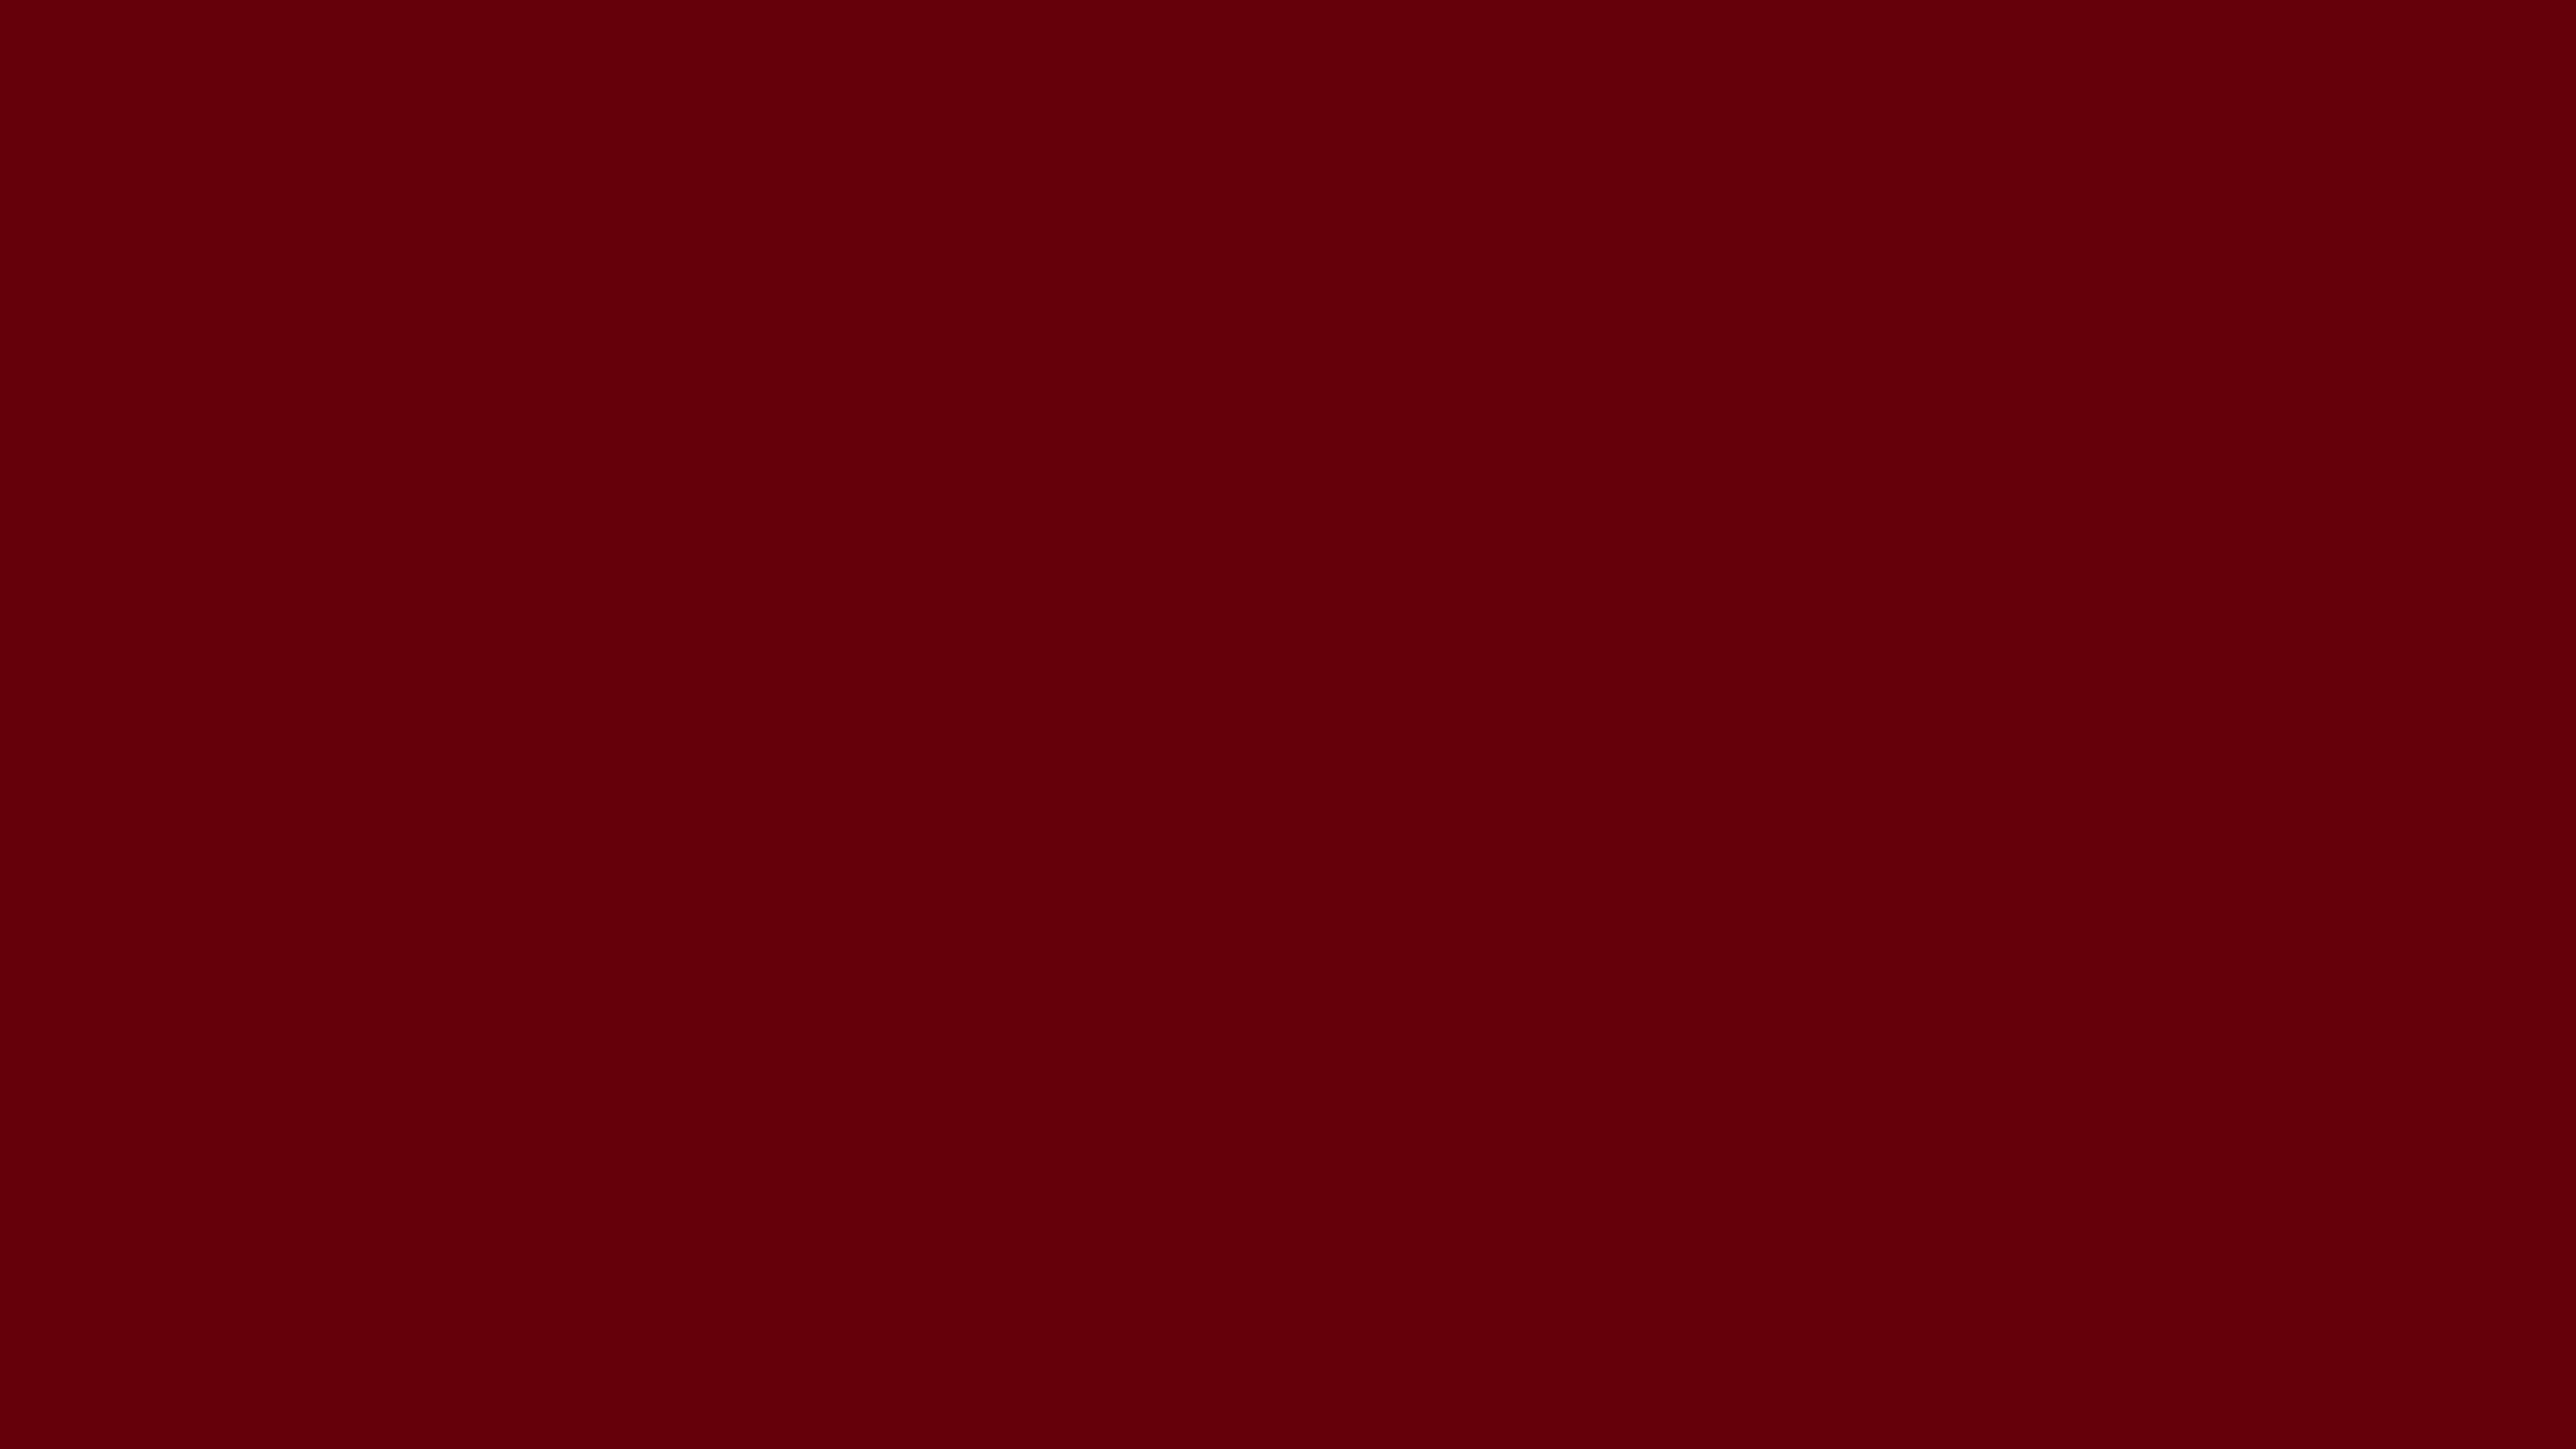 5120x2880 Rosewood Solid Color Background